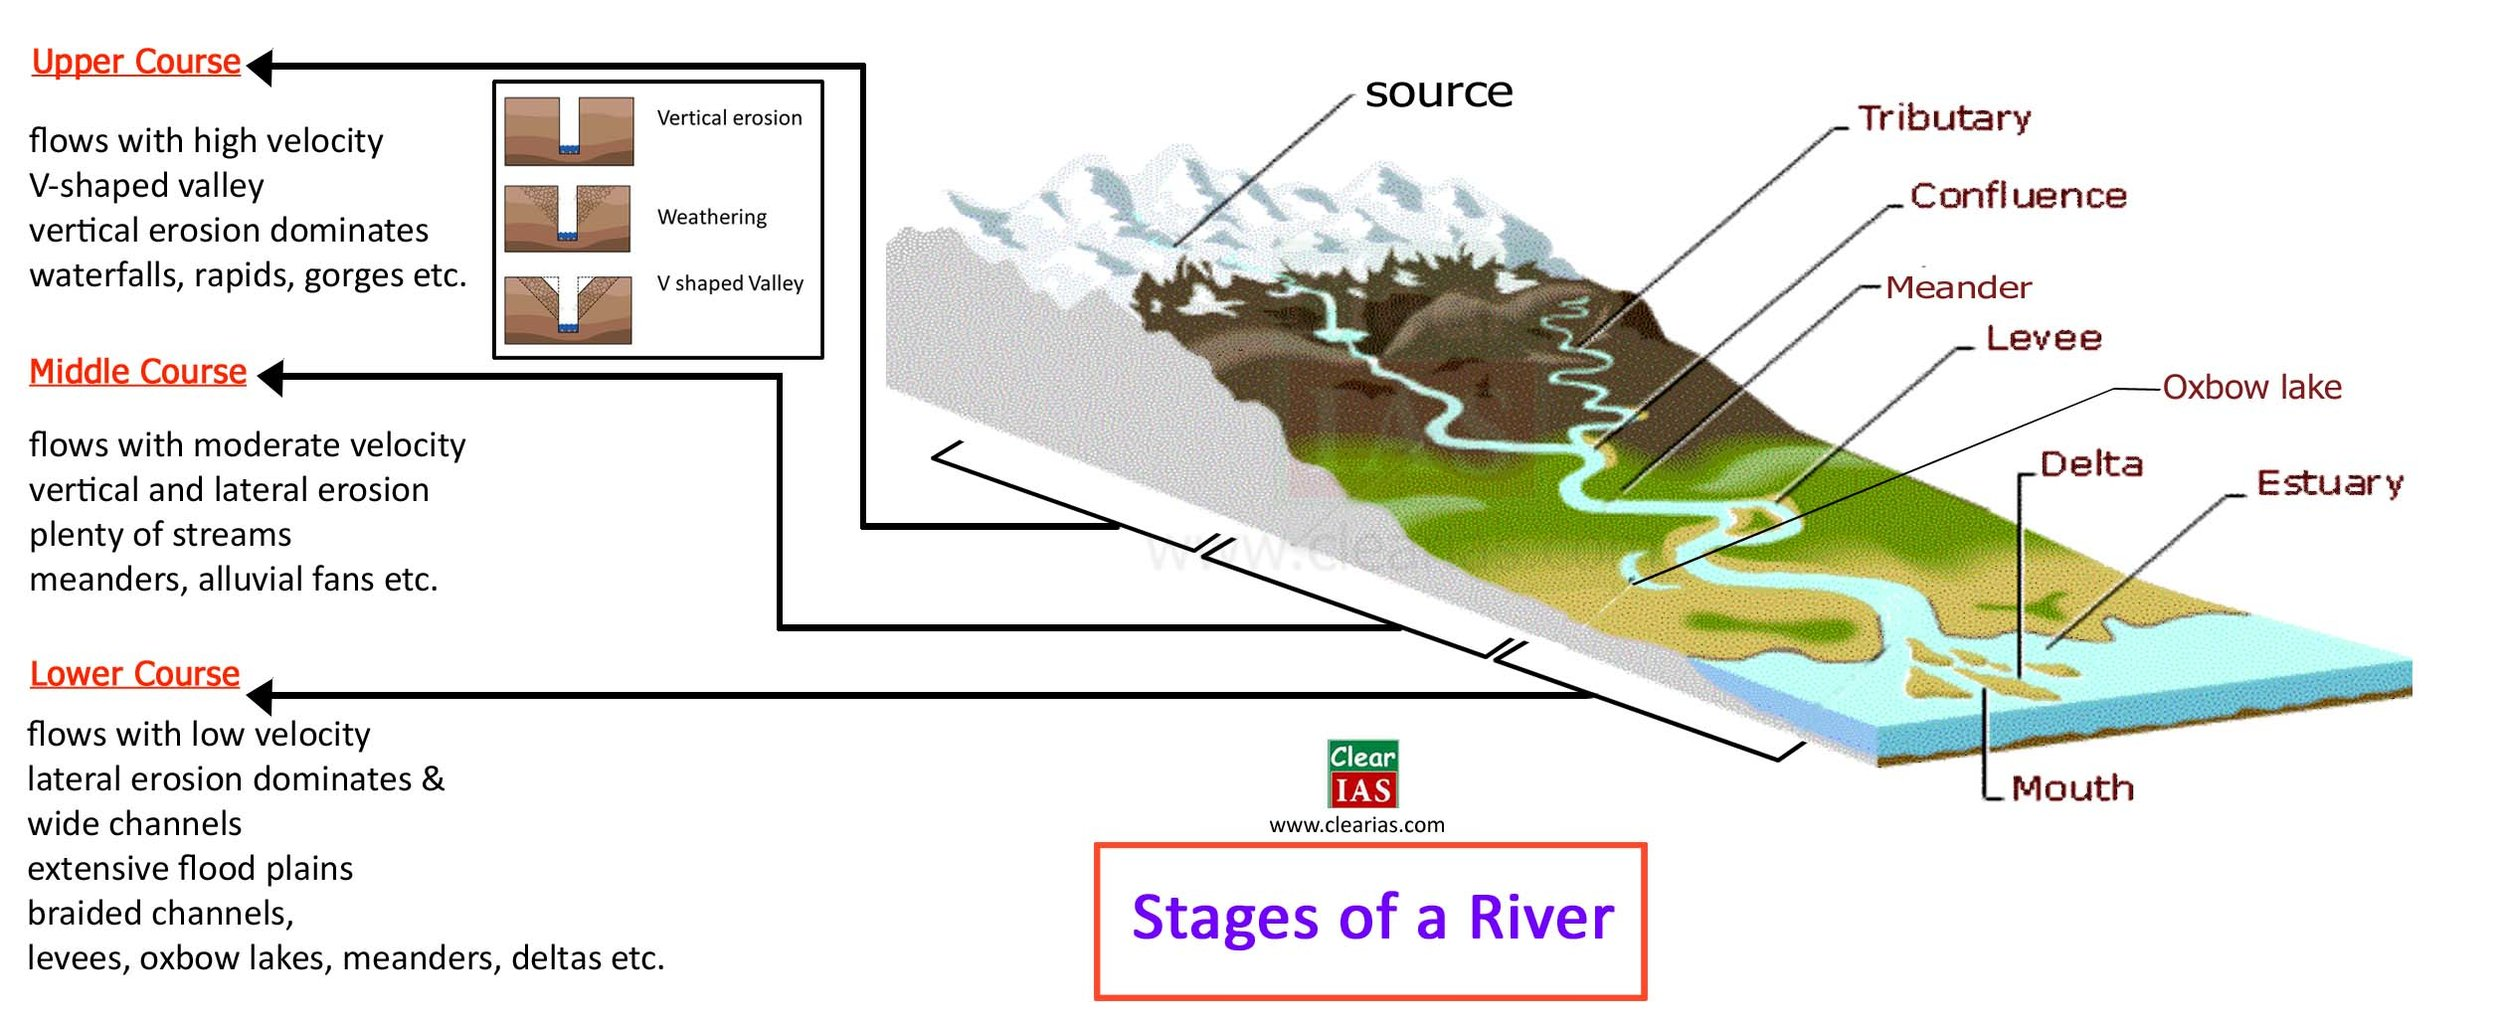 river profile.jpg